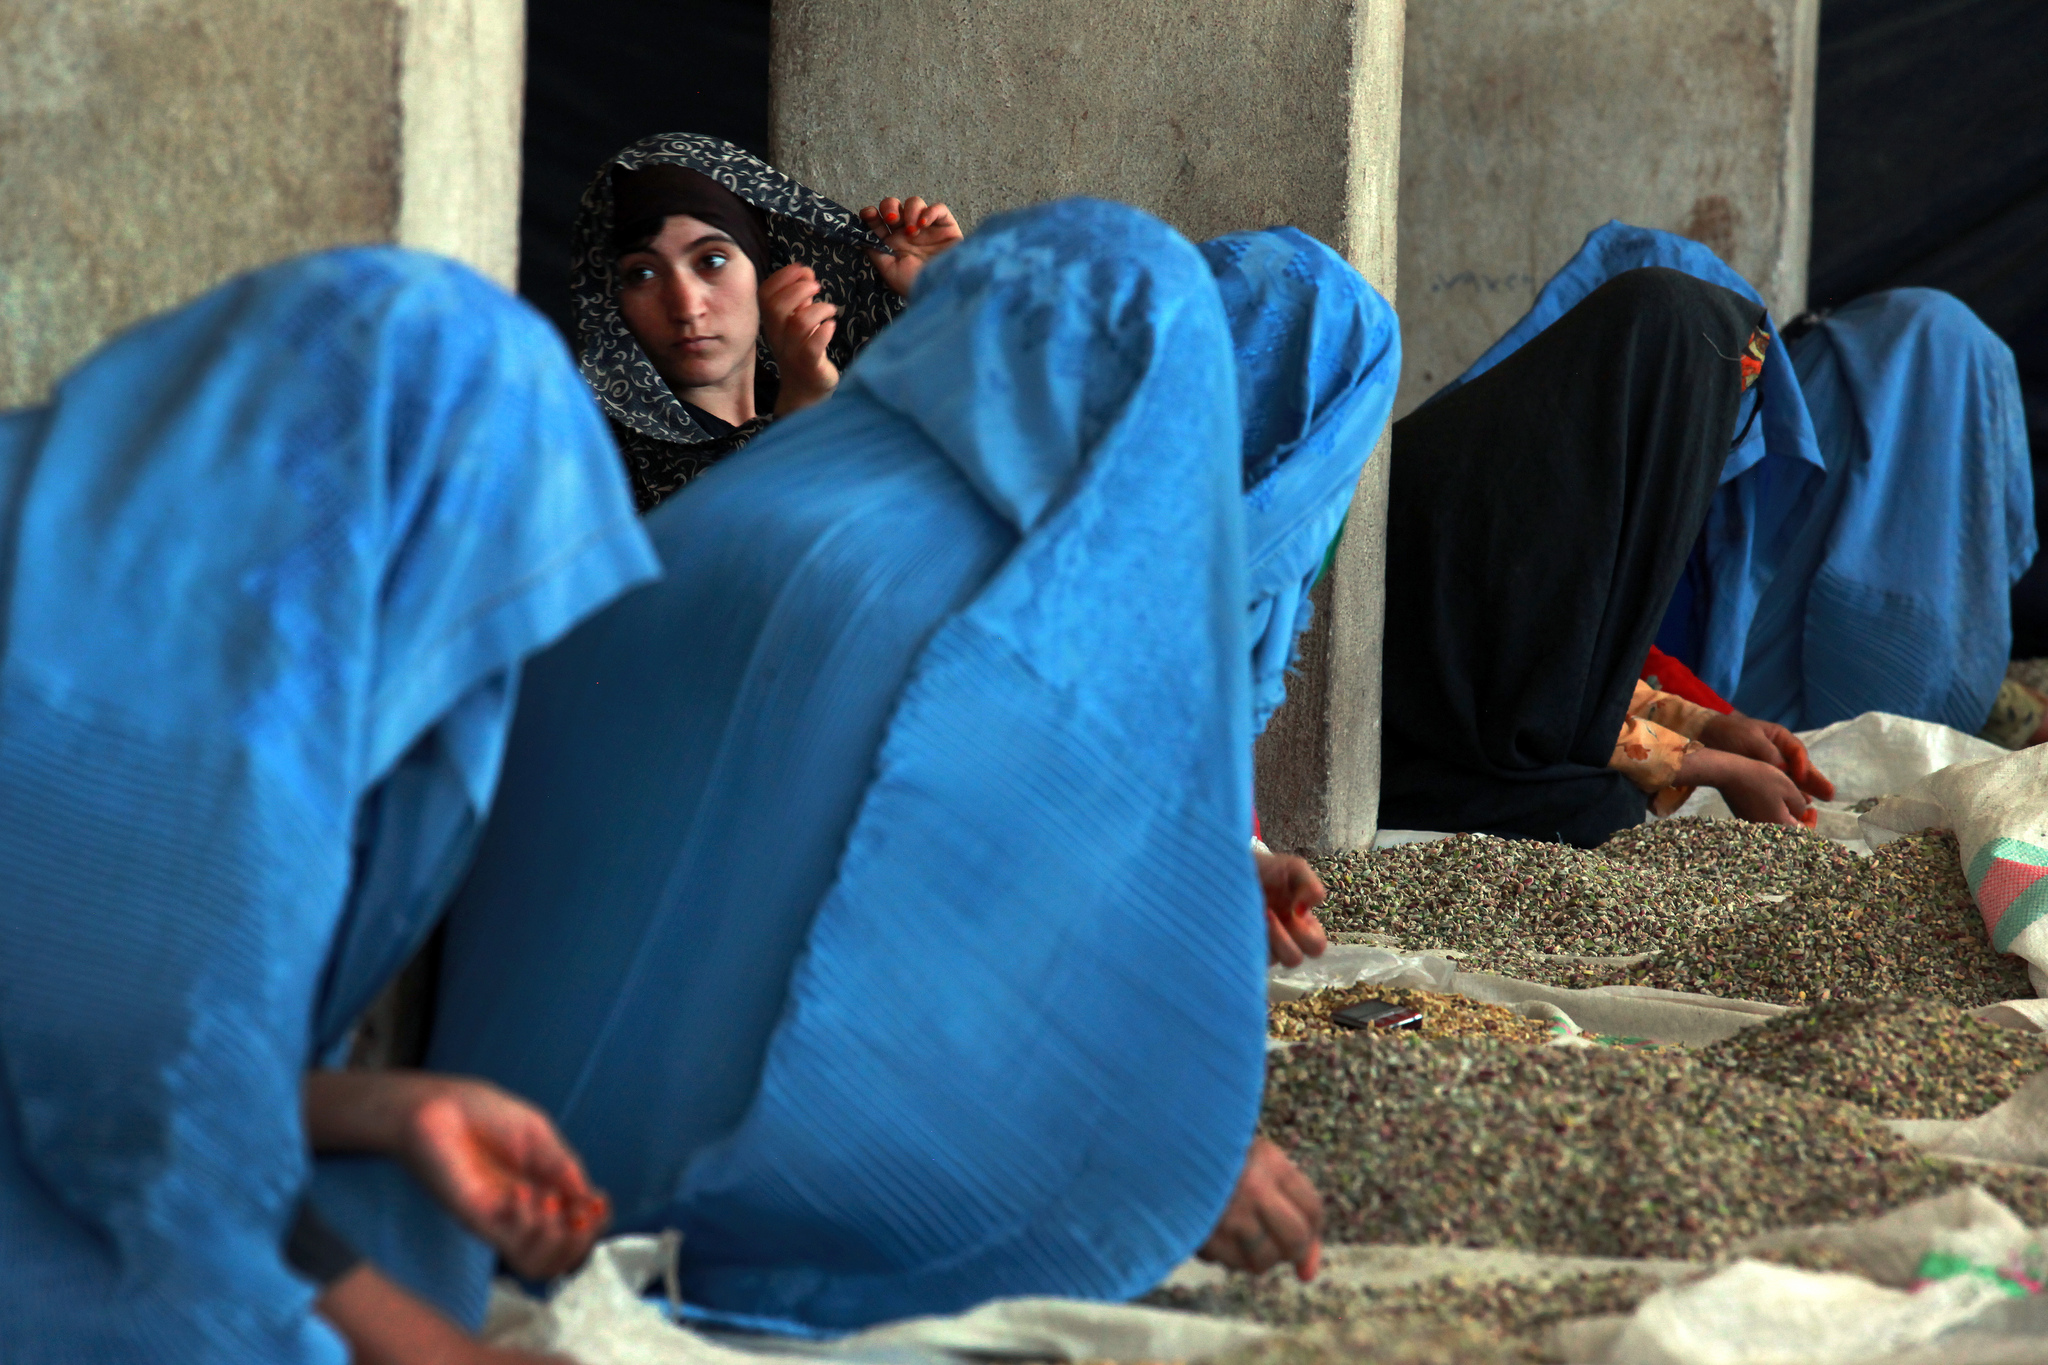 Women sort pistachios at a factory in Herat. Image: United Nations Photo under a CC License